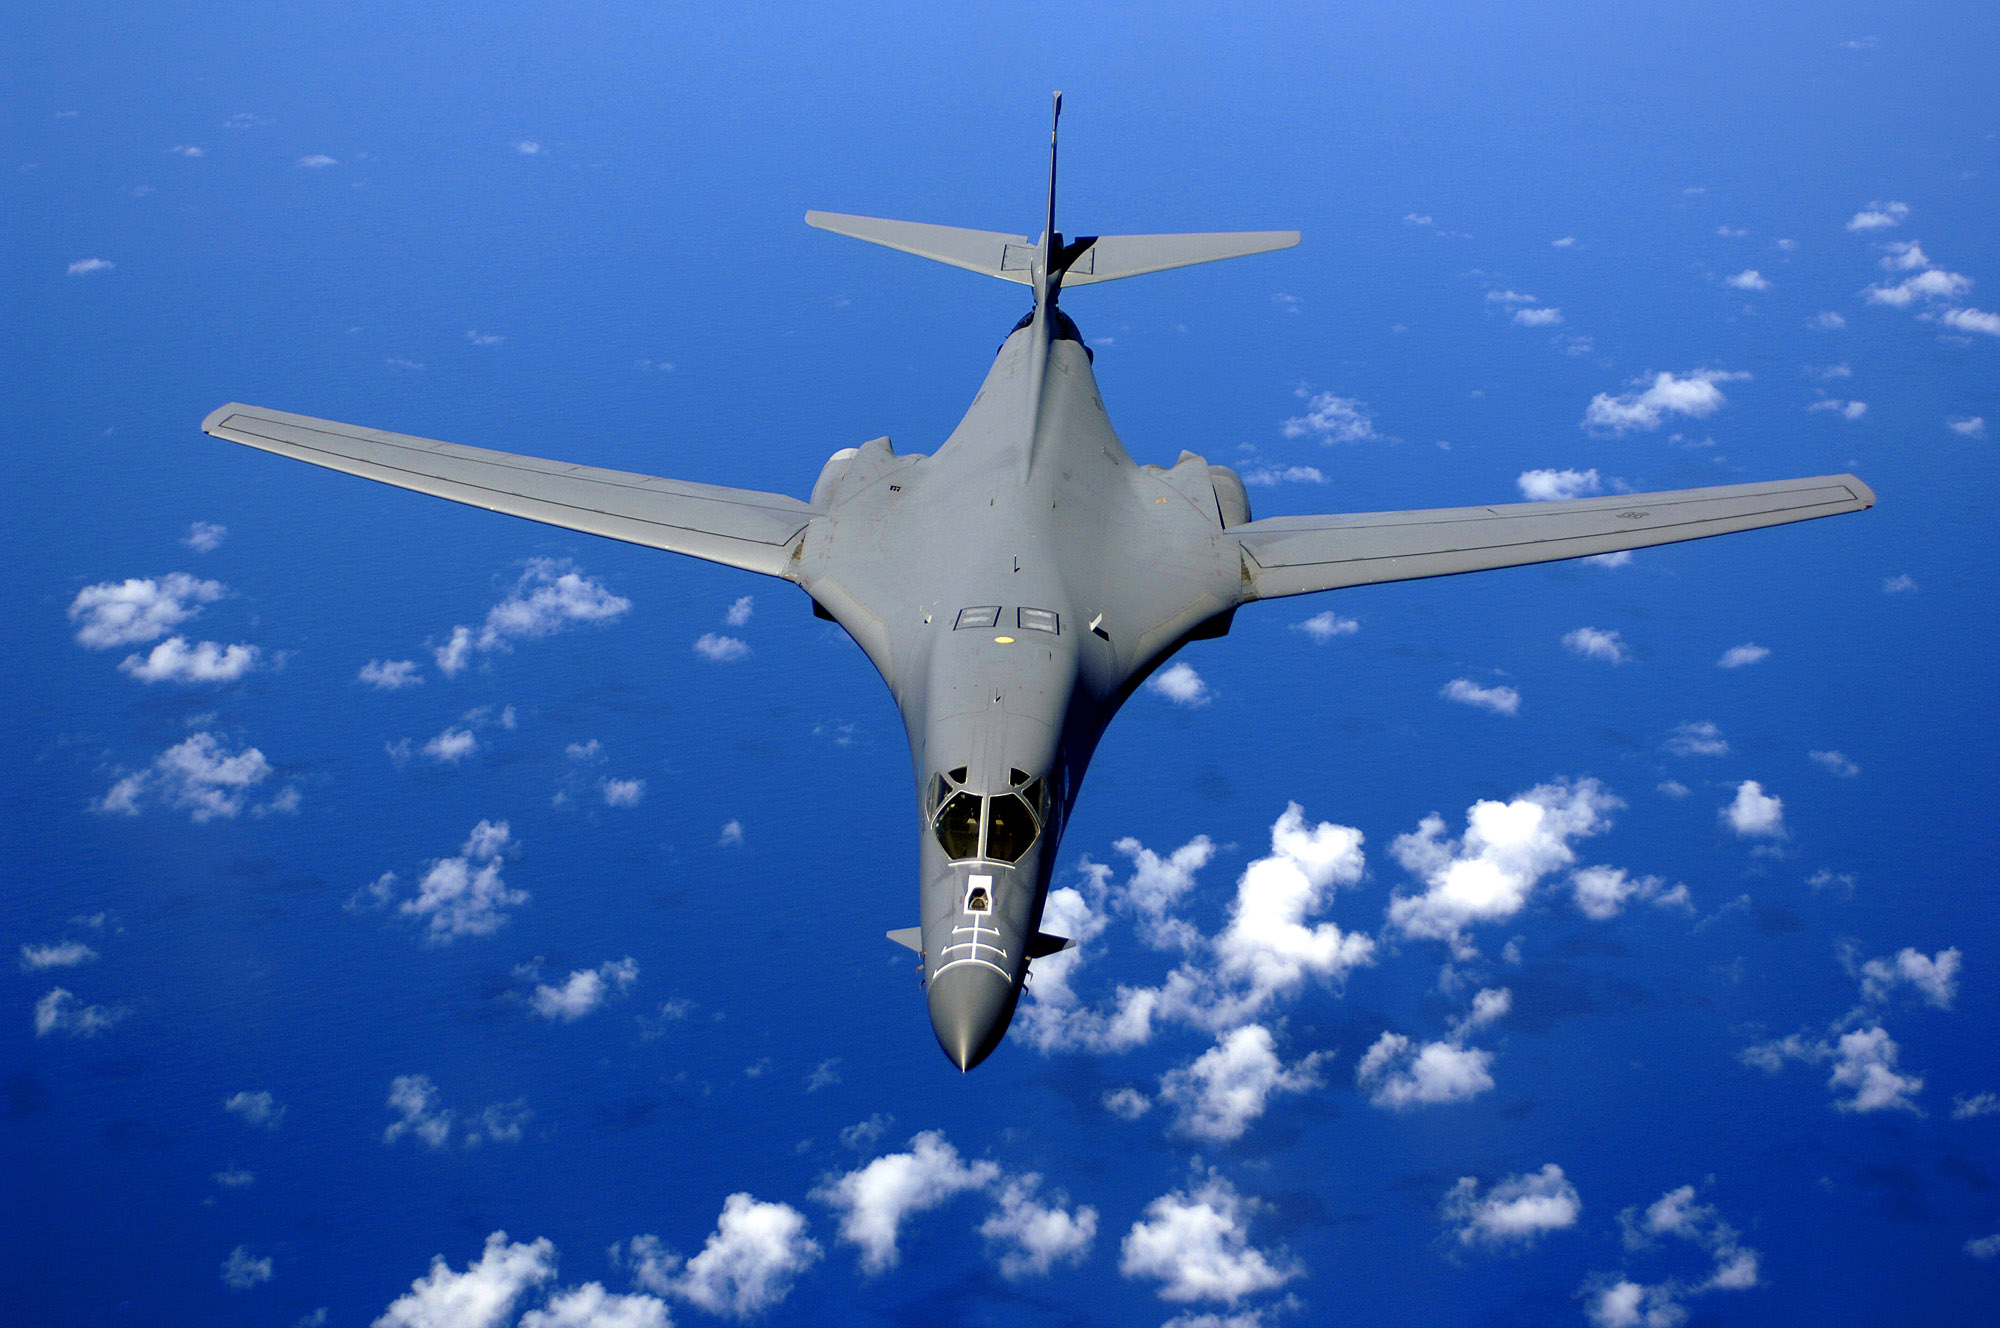 File:B-1B over the pacific ocean.jpg - Wikipedia B1 Lancer Supersonic